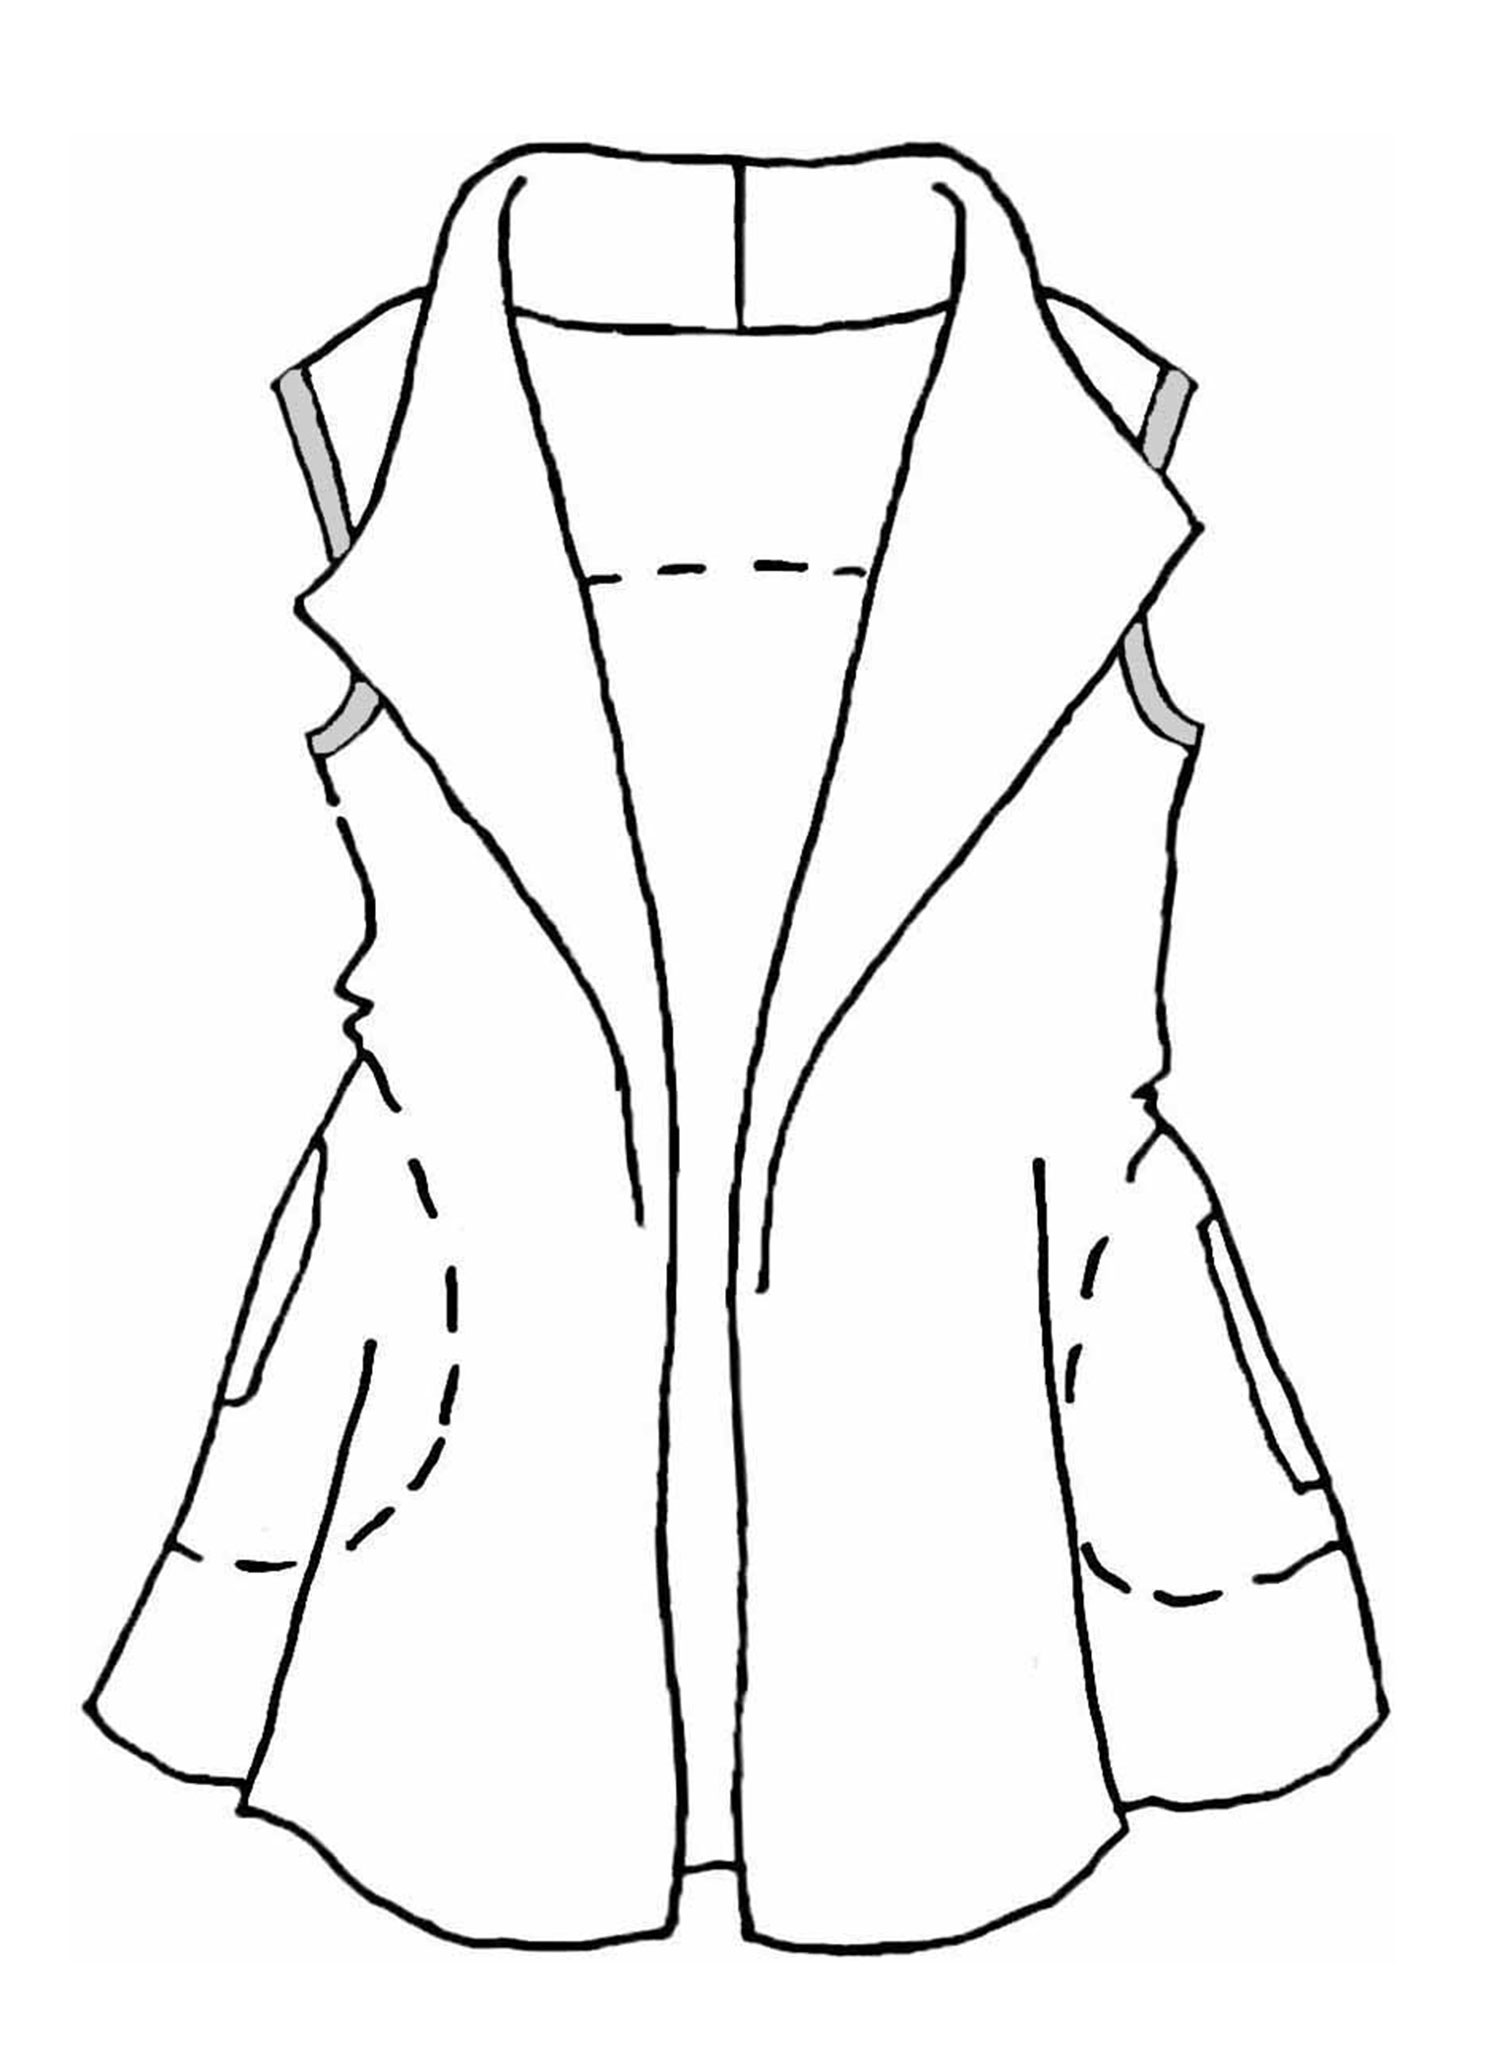 Citizen Vest sketch image